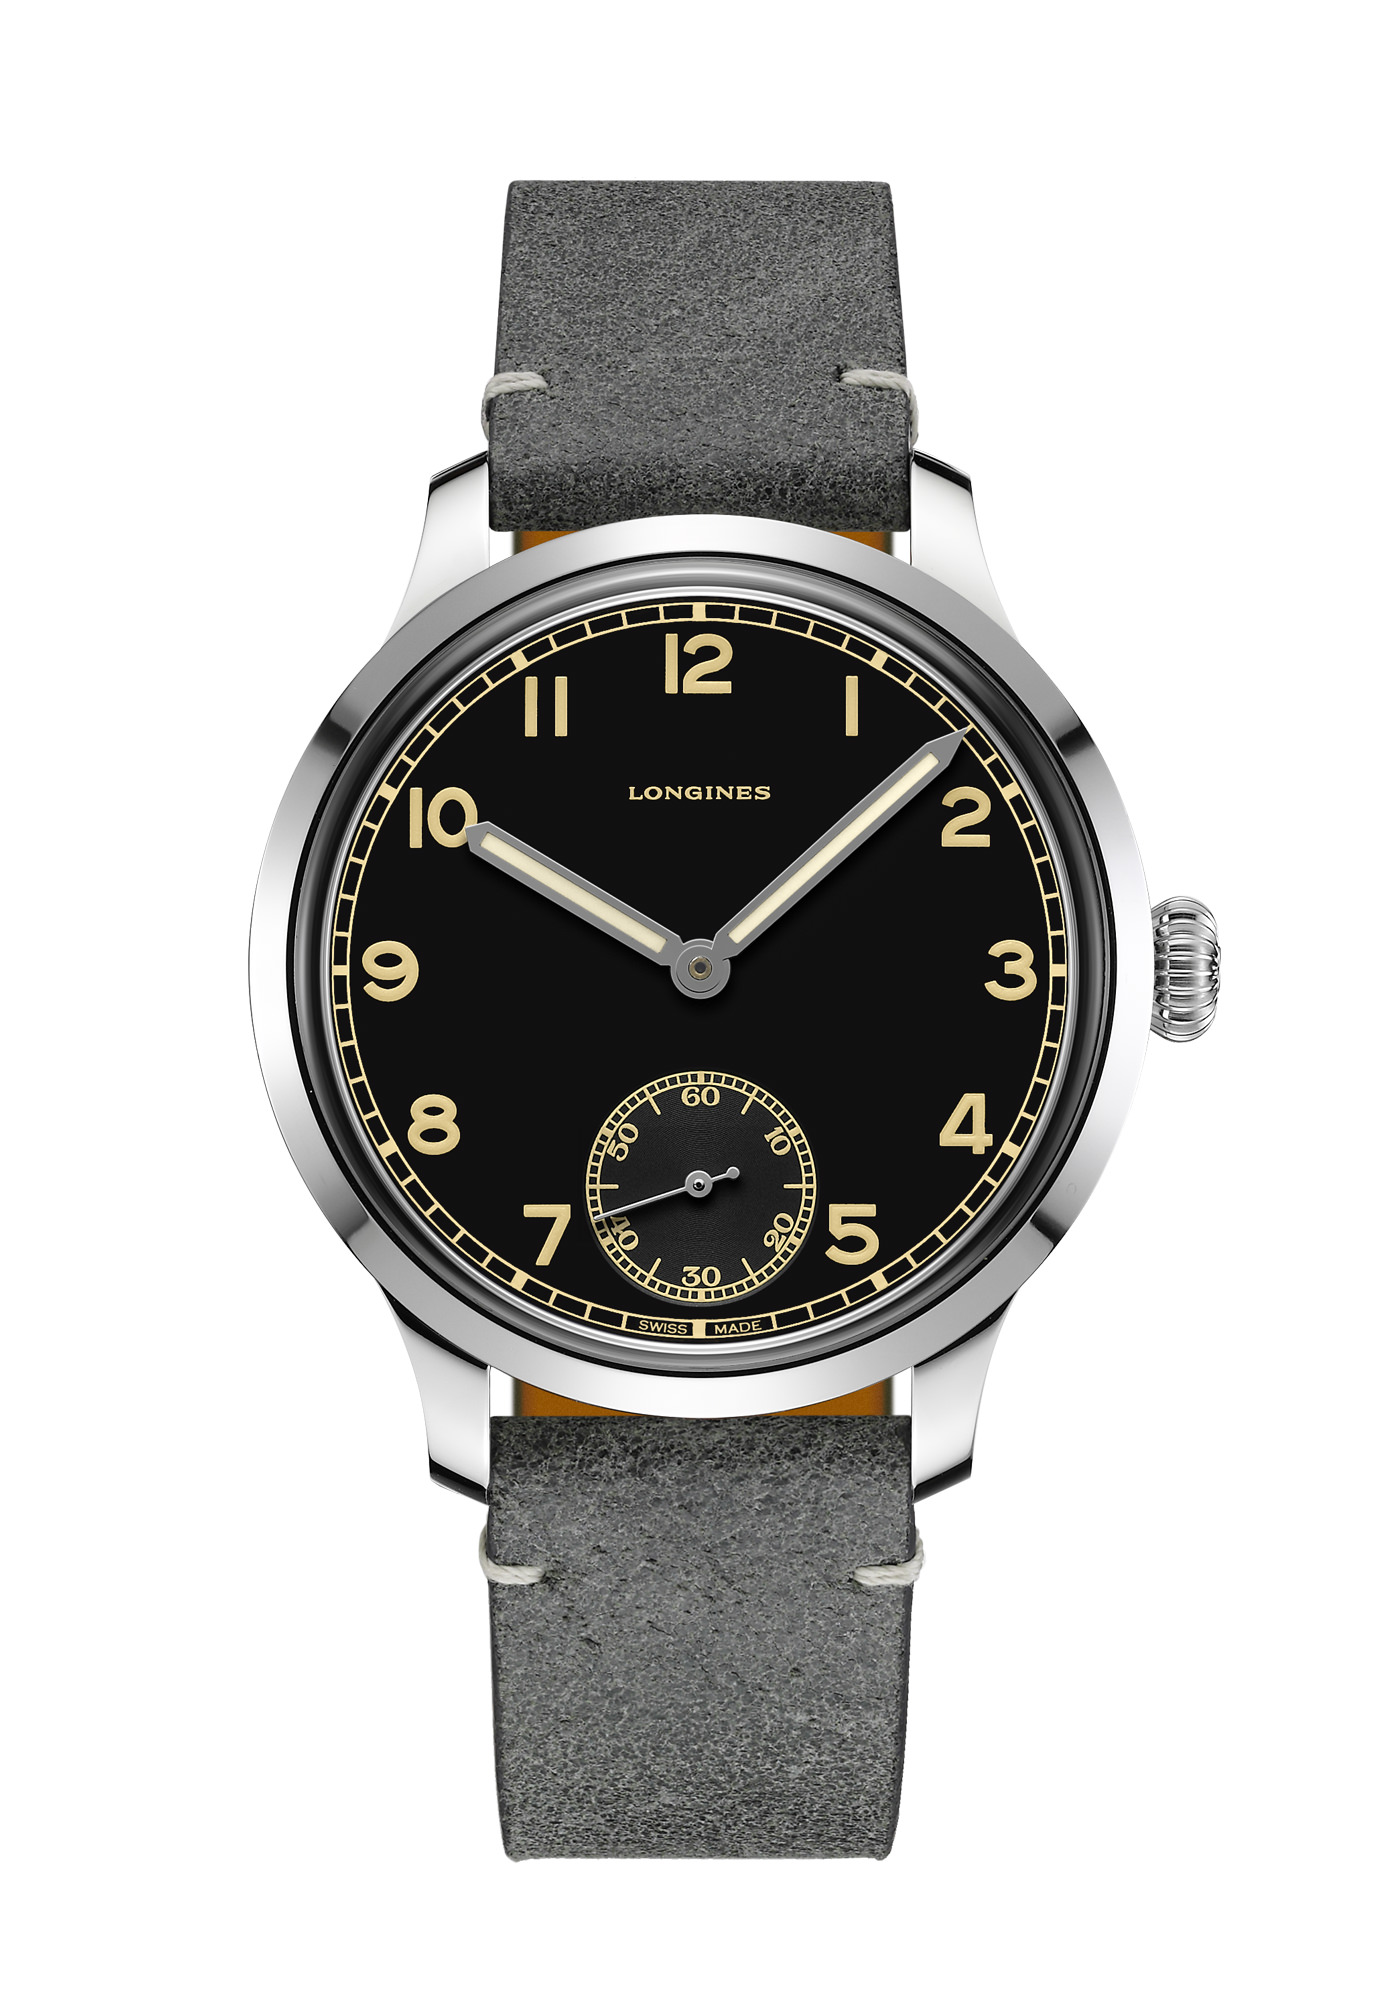 Montre Longines Collection Heritage Military 1938